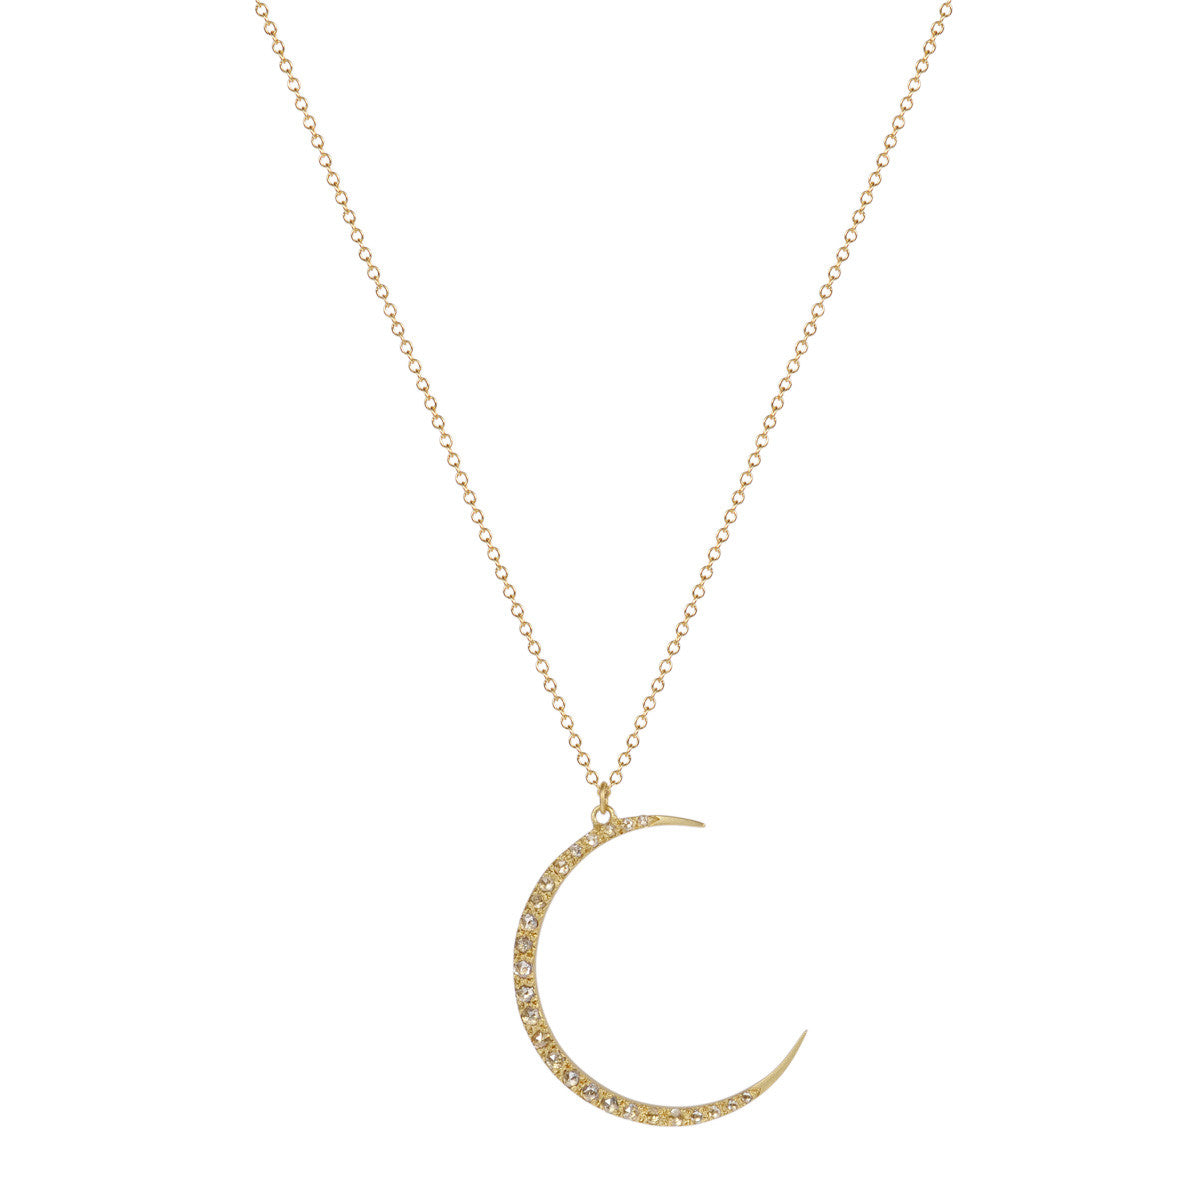 18K Gold Large Crescent Moon Pendant with Diamonds